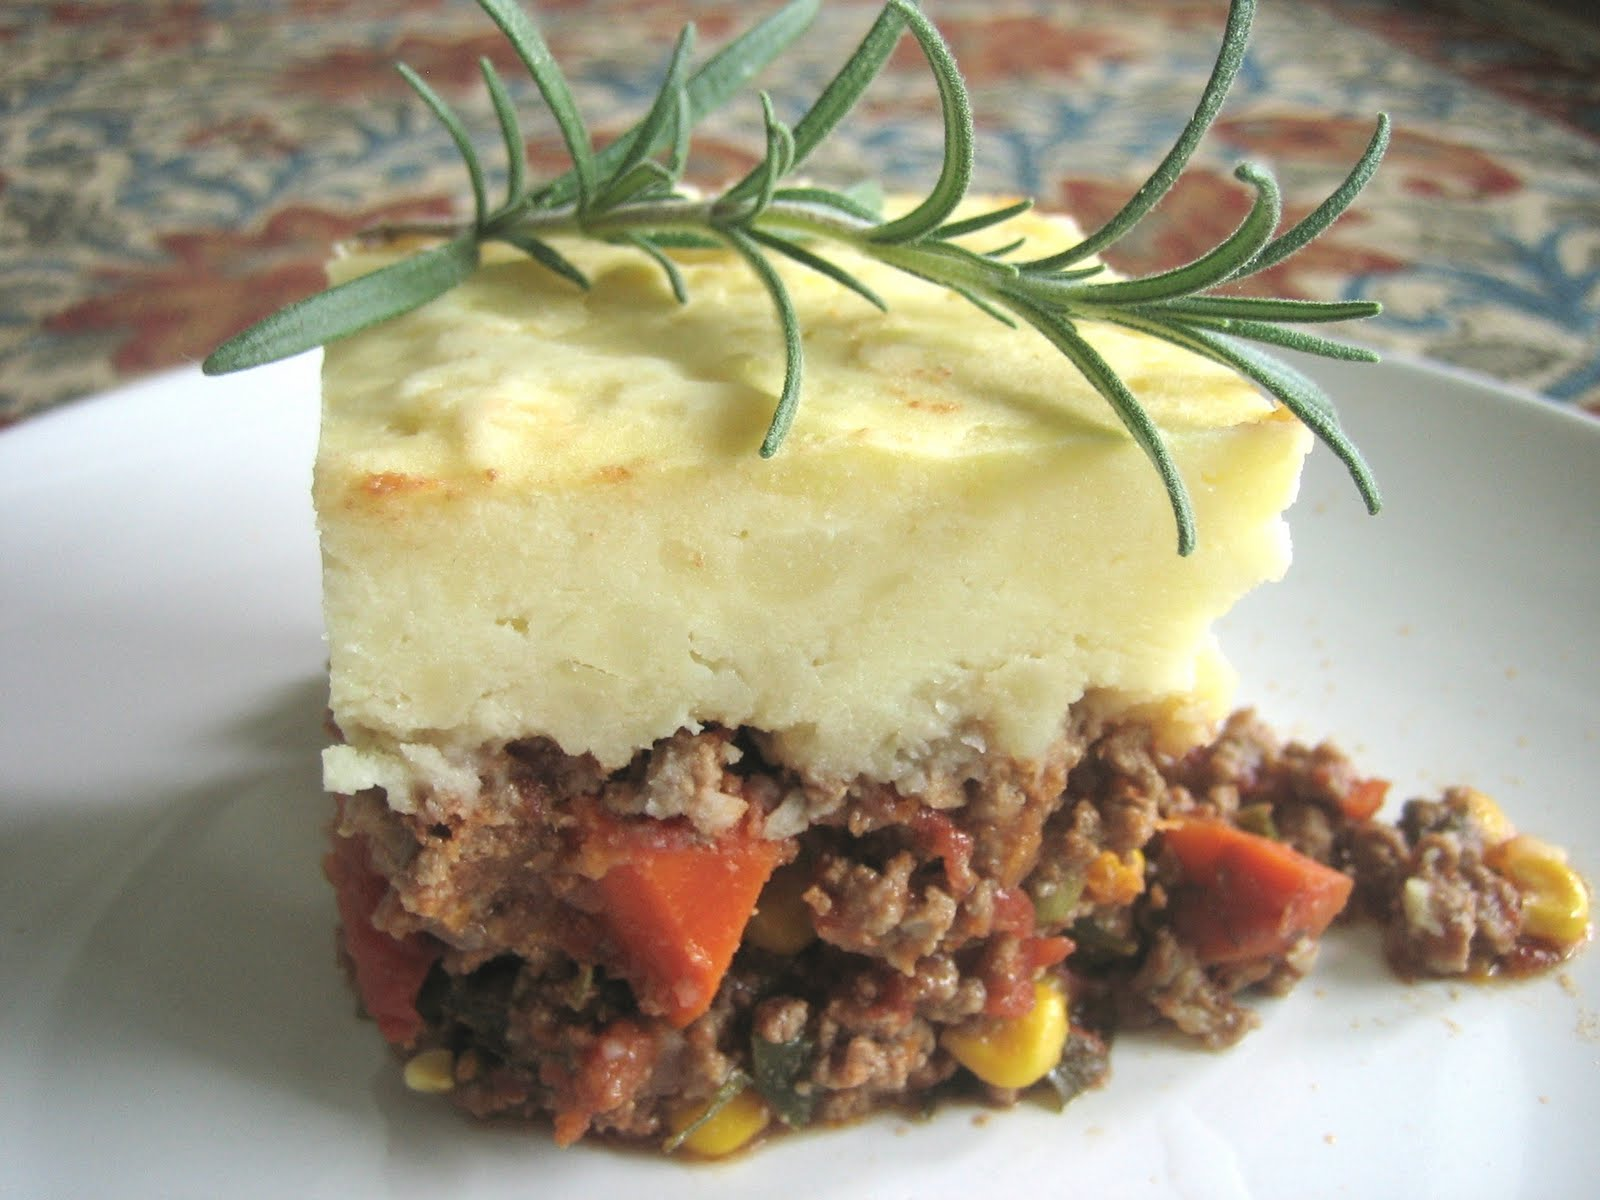 Dish Out and Dig In: No Longer Sheepish About Shepherd's Pie